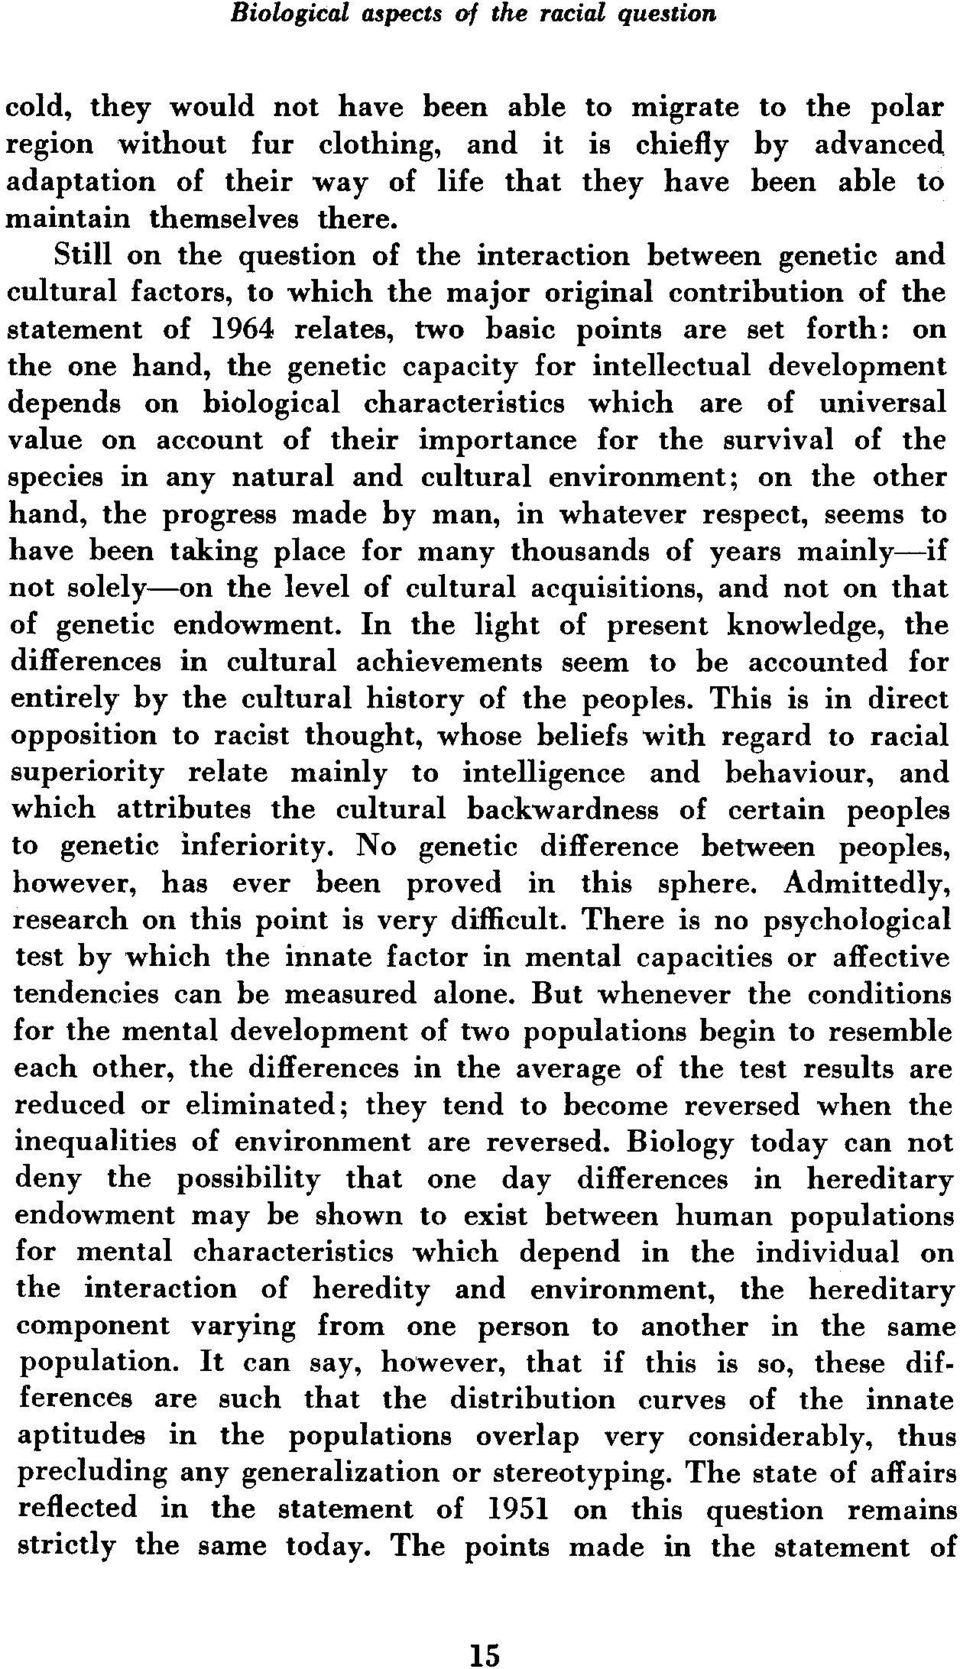 Still on the question of the interaction between genetic and cultural factors, to which the major original contribution of the statement of 1964 relates, two basic points are set forth: on the one